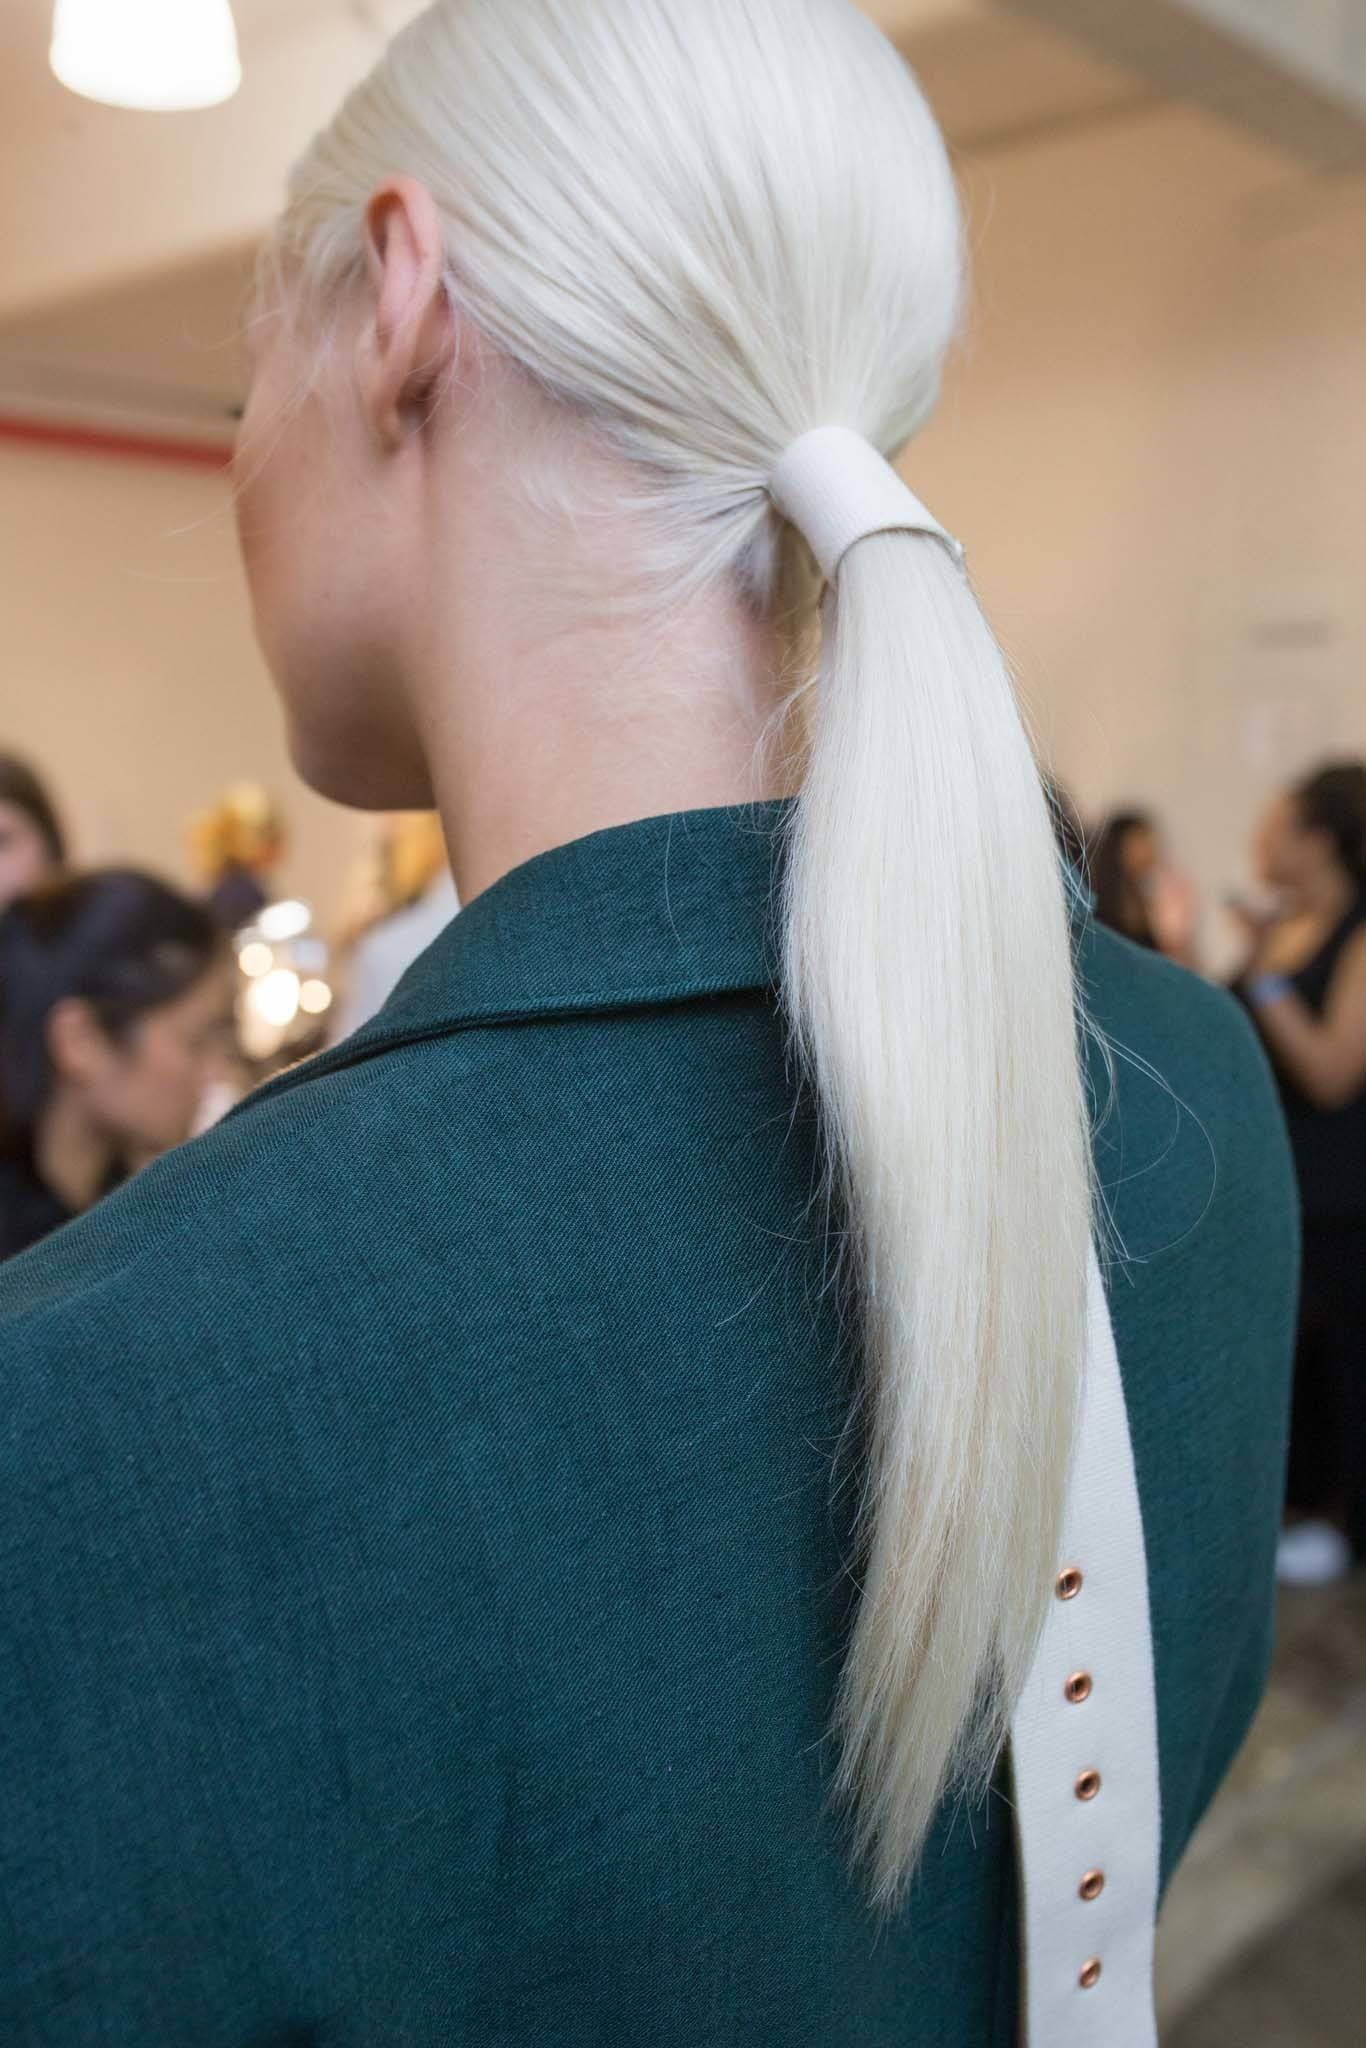 young woman with bleach blonde hair wearing belt on ponytail